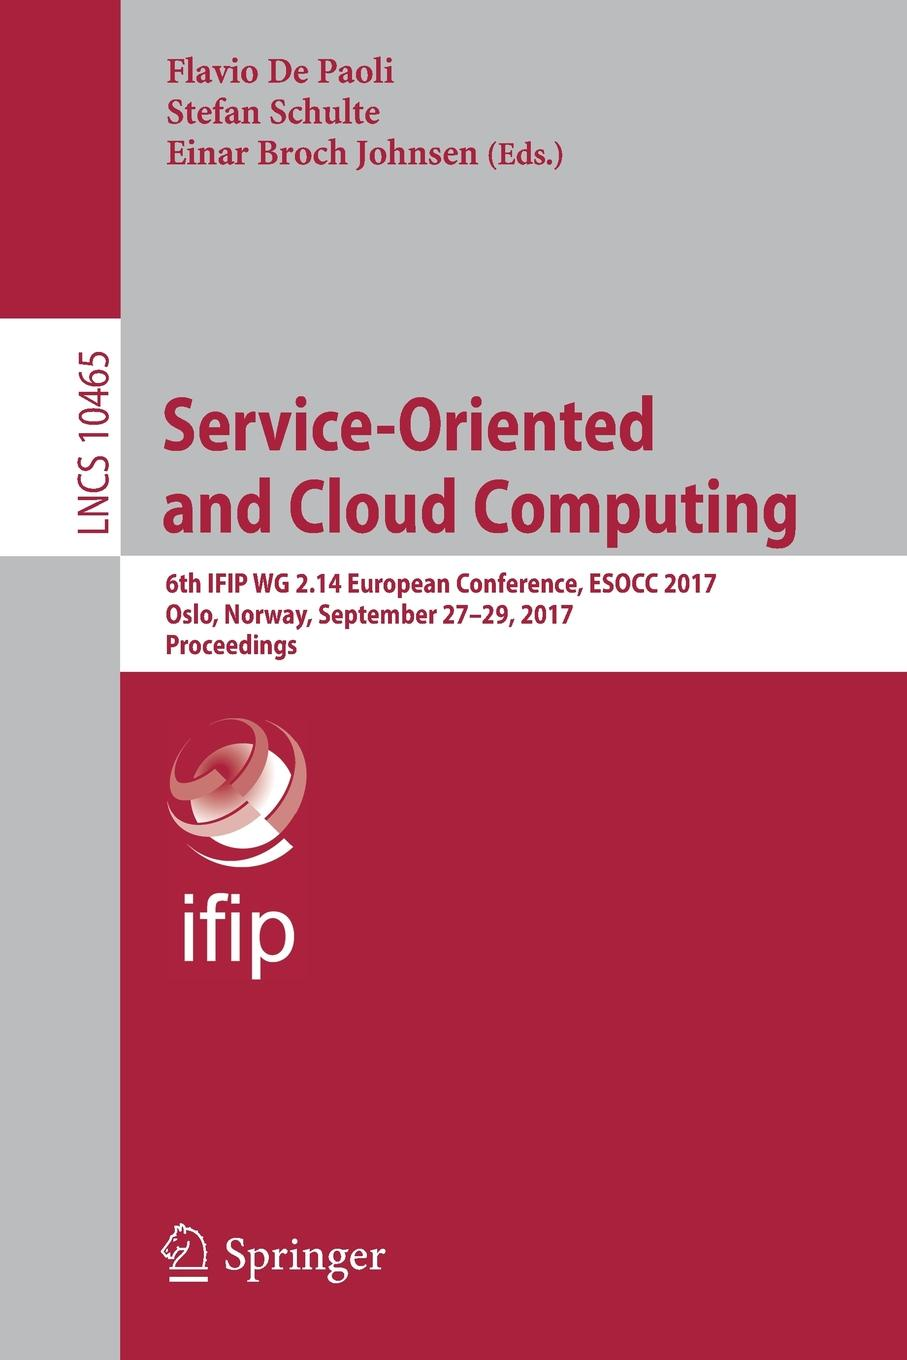 Service-Oriented and Cloud Computing. 6th IFIP WG 2.14 European Conference, ESOCC 2017, Oslo, Norway, September 27-29, 2017, Proceedings bubendorfer kris market oriented grid and utility computing